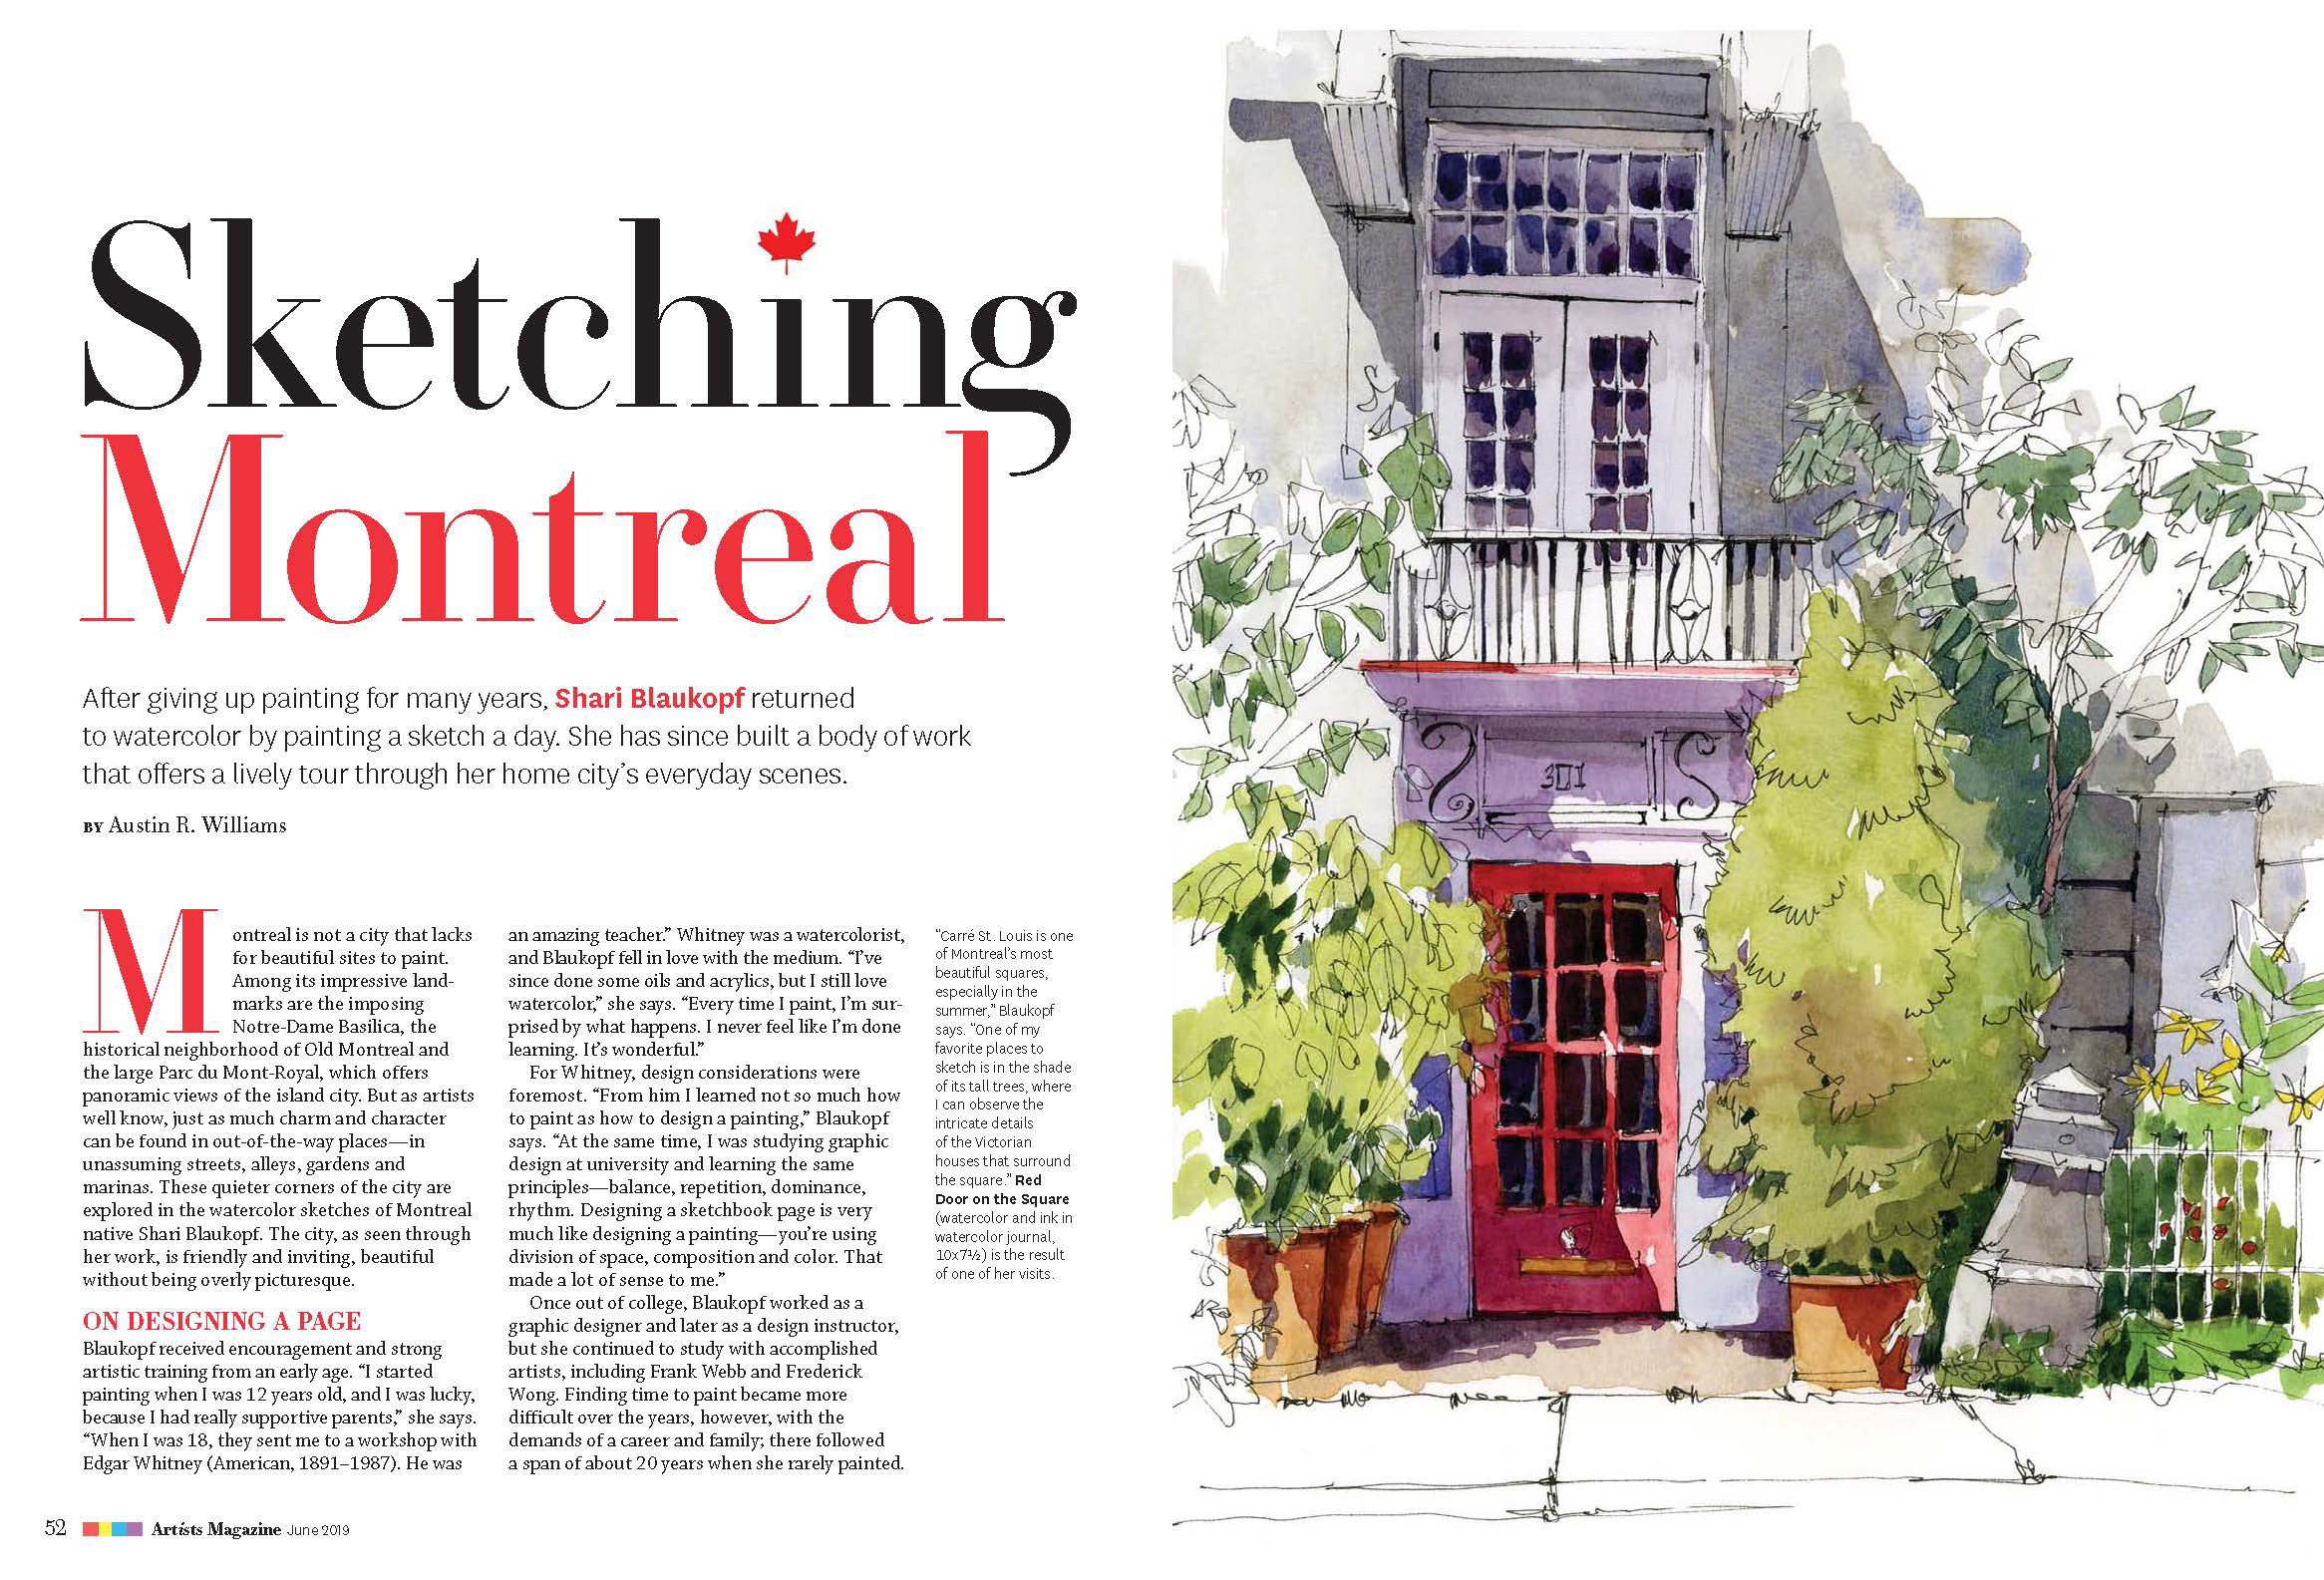 Sketching Montreal: an article in Artists Magazine